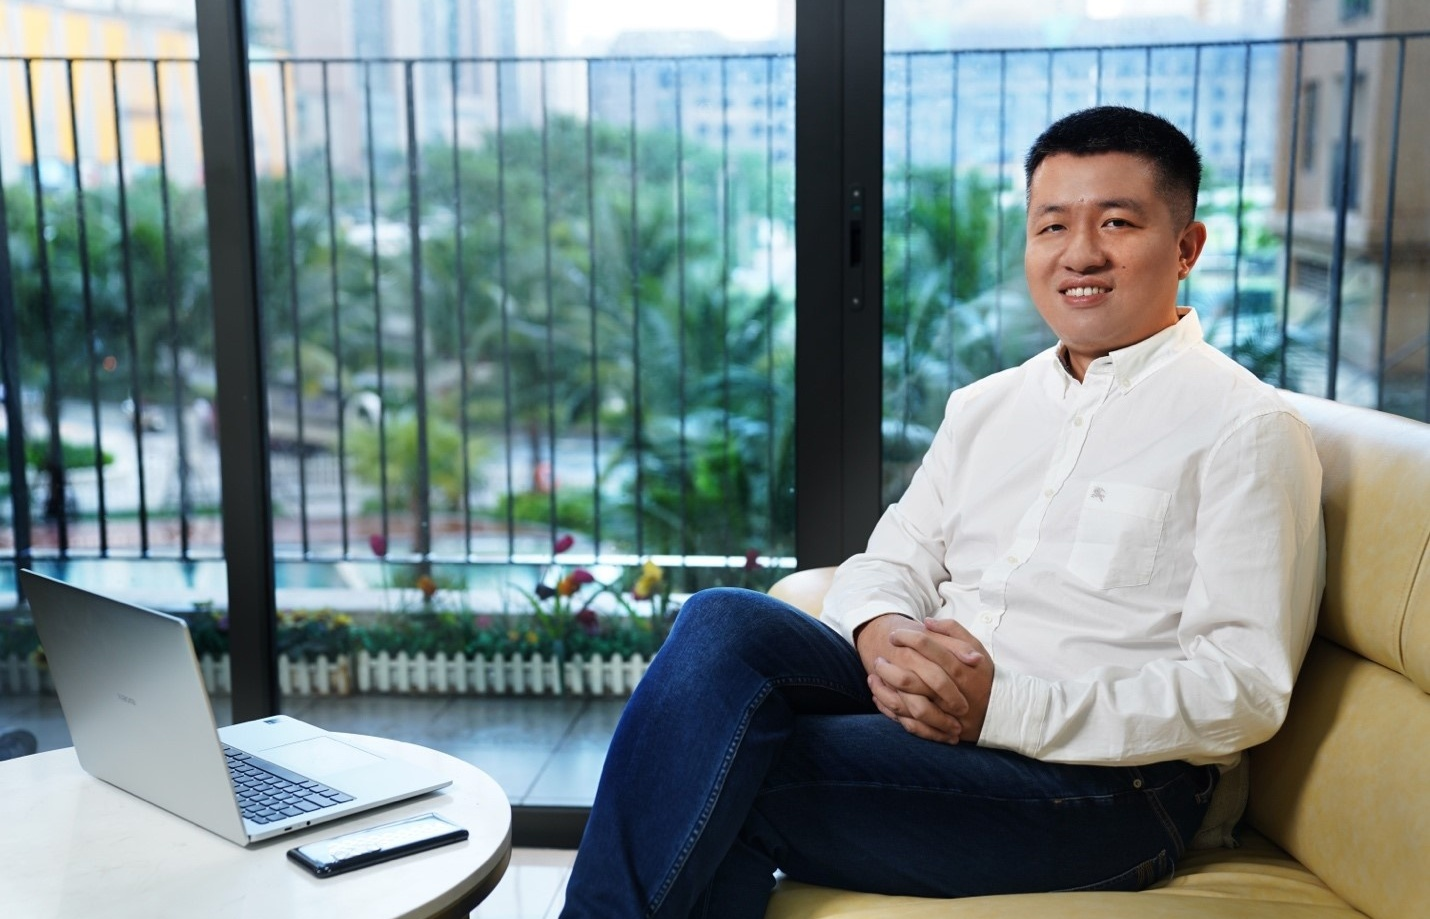 Xiaomi dives into AIoT development to realise future vision